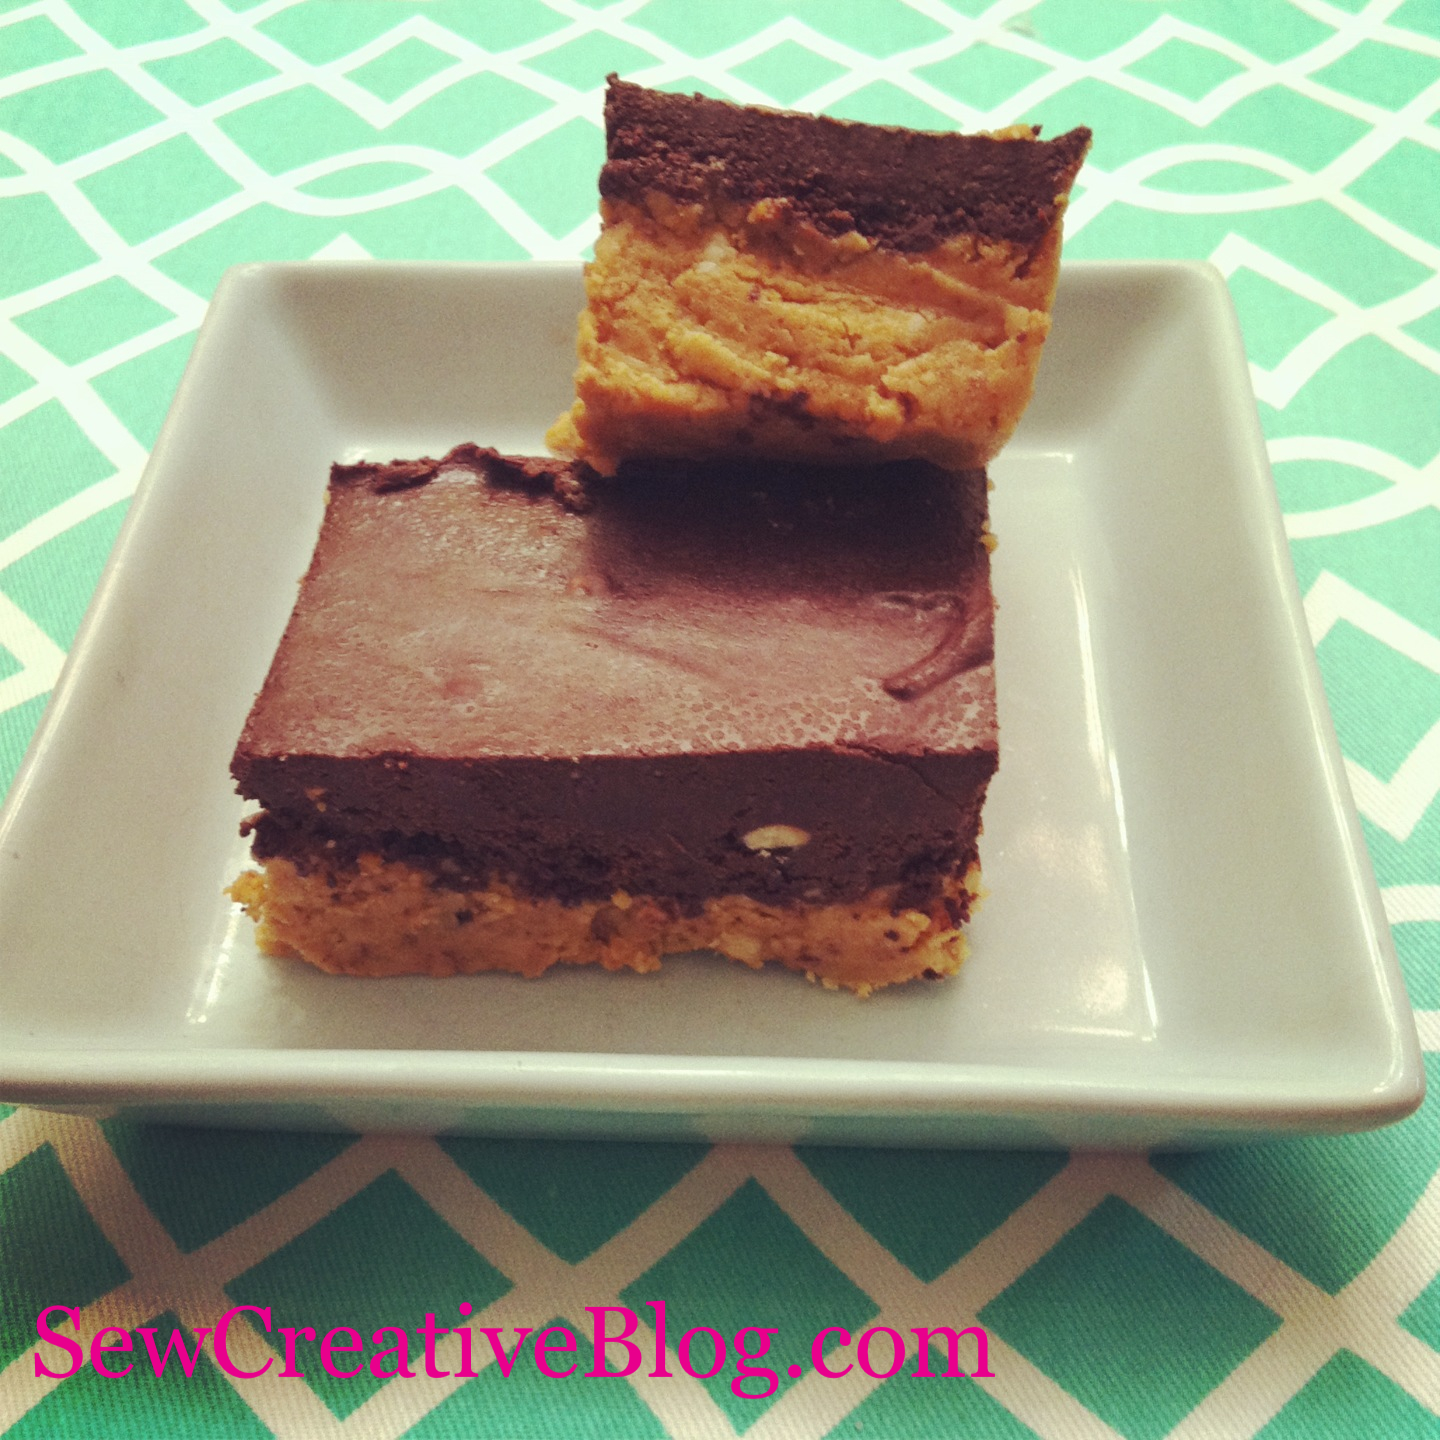 Chocolate Peanut Butter Bar Recipe Finished Bars